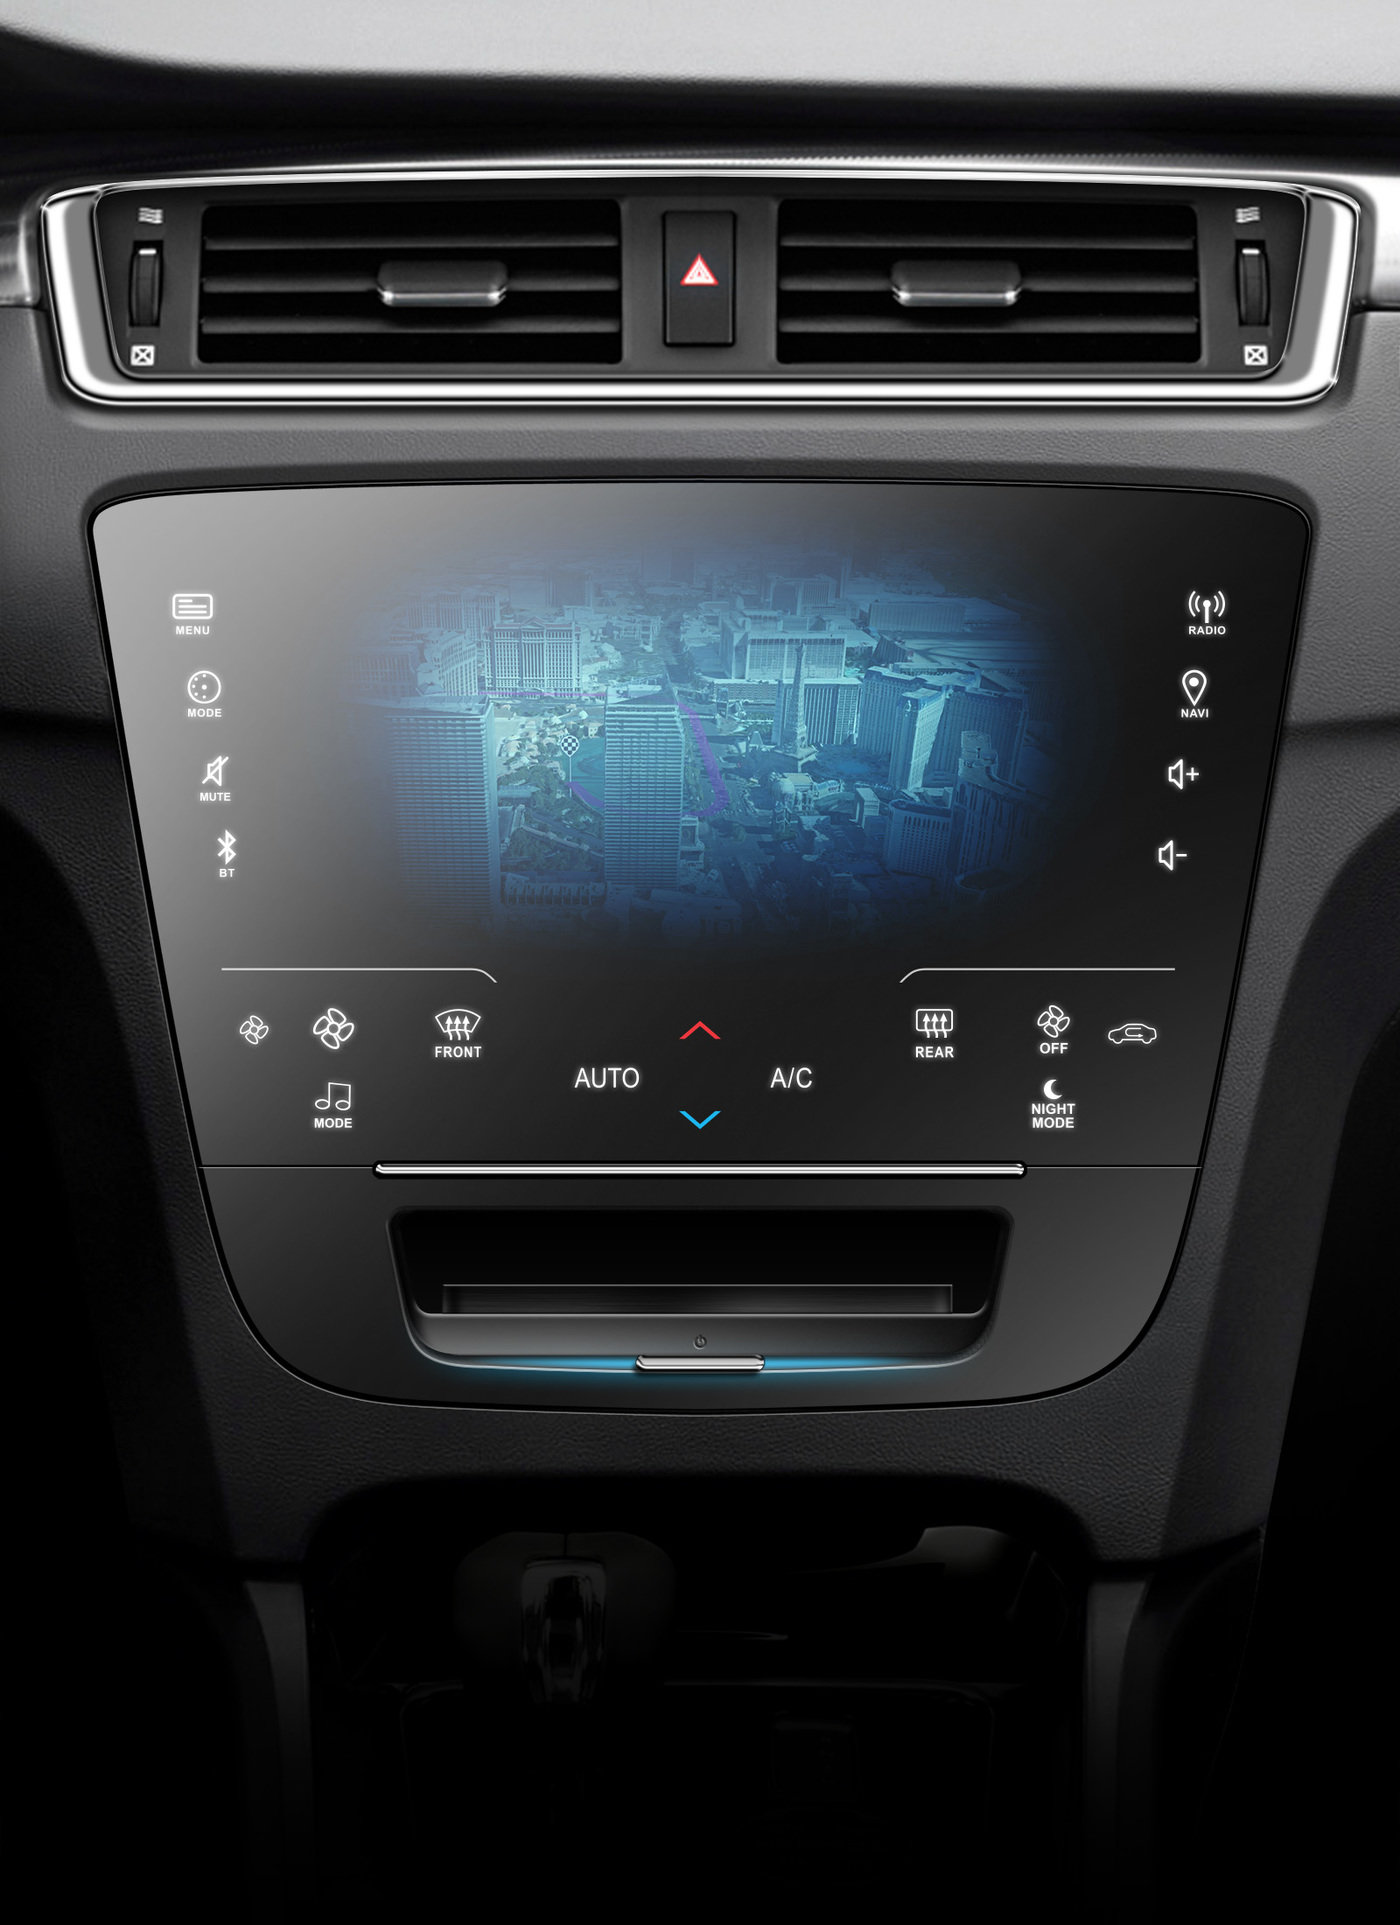 Peugeot 508 Fully Digital Dashboard By Kyle Lei At Coroflot Com